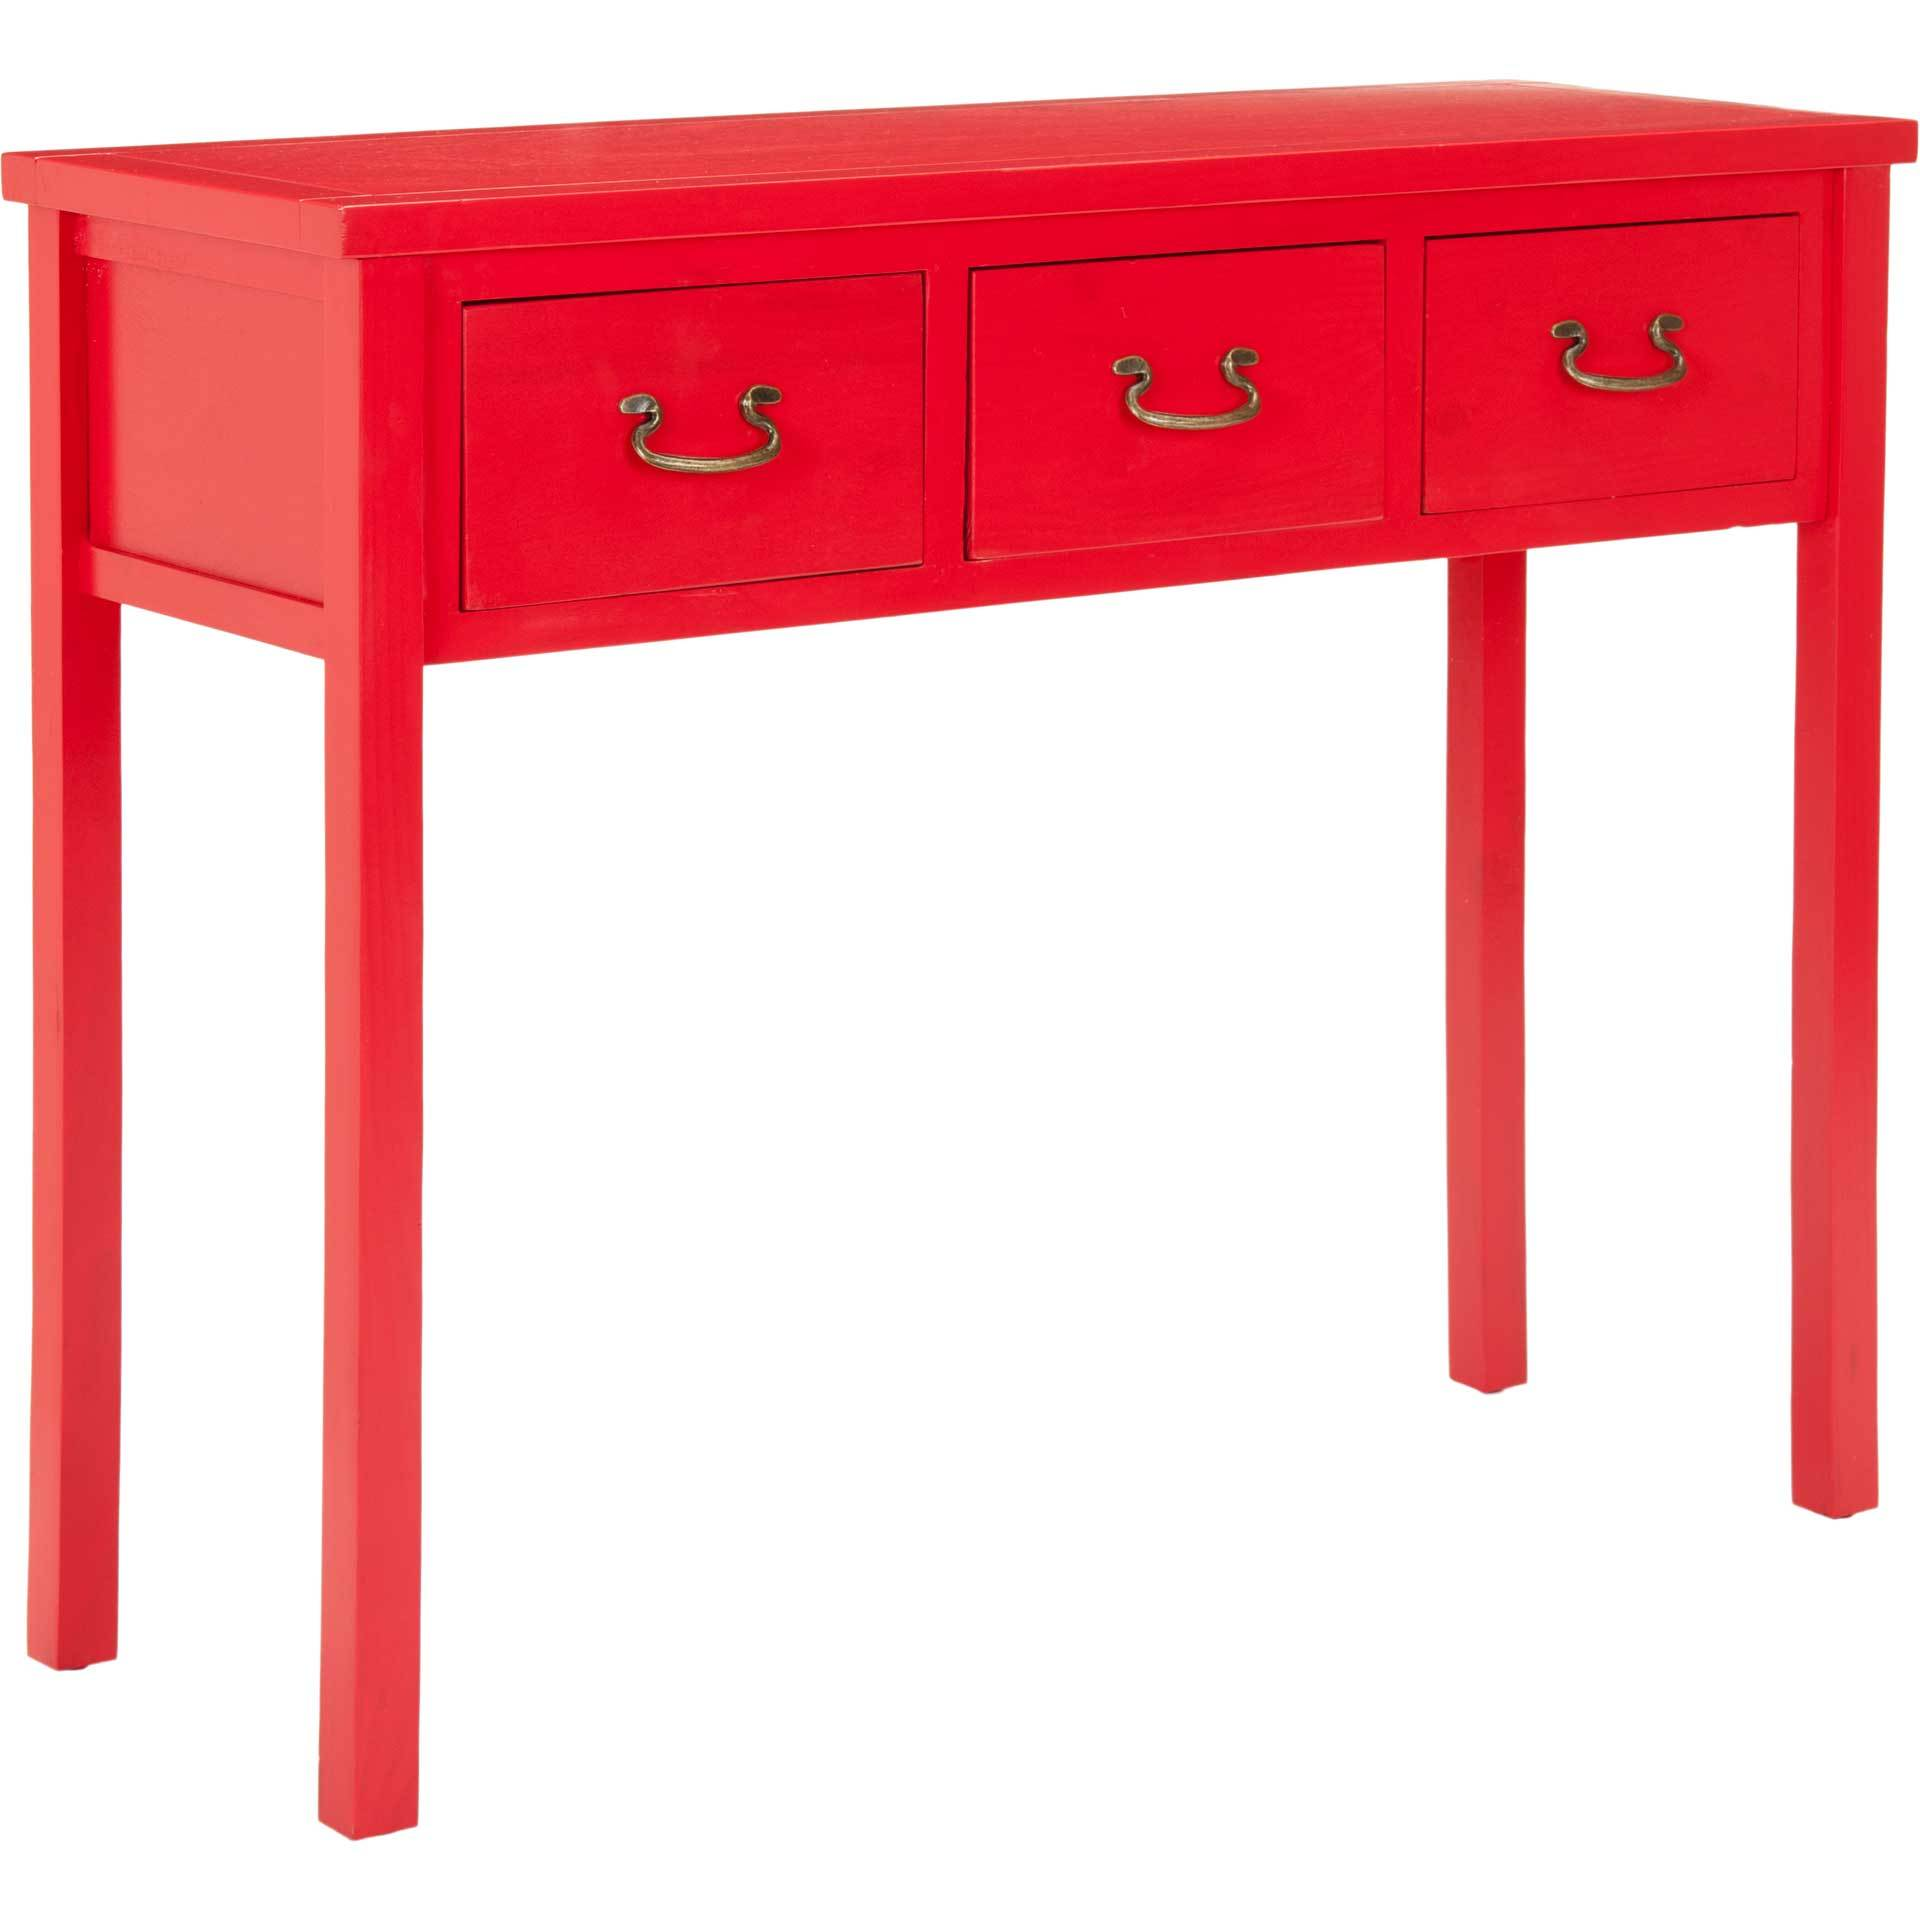 Ciara Console With Storage Drawers